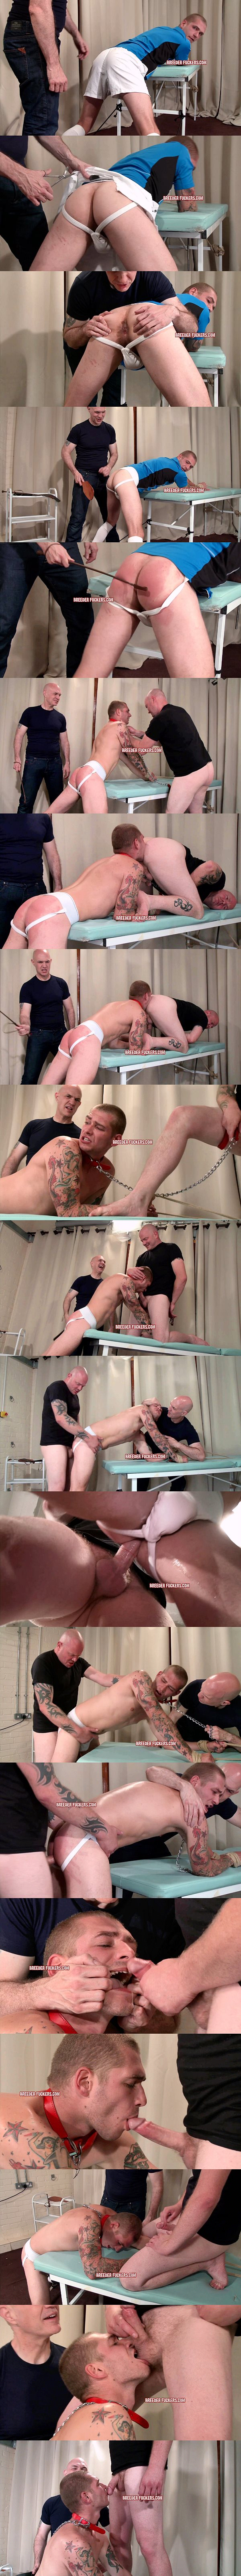 Cocky inked straight jock Aaron (aka Fred Briars) paddled, lashed, made to rim a man's ass and suck his cock before he gets fucked at Breederfuckers 02